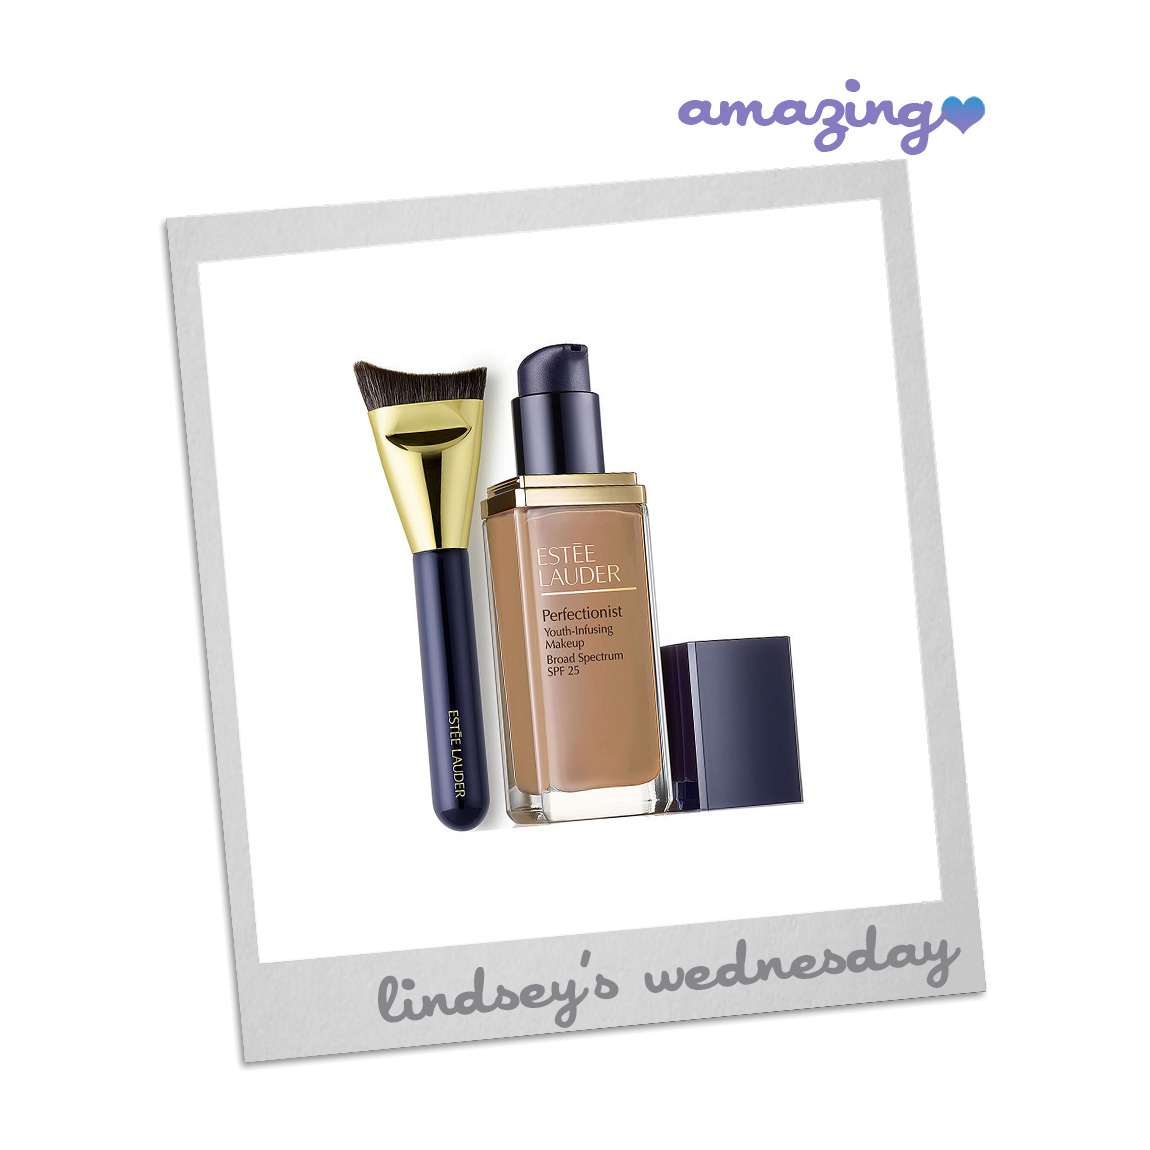 Estée Lauder's Perfectionist Youth-Infusing Makeup SPF 25 combines two necessary beauty products into one; it's a makeup that acts ...